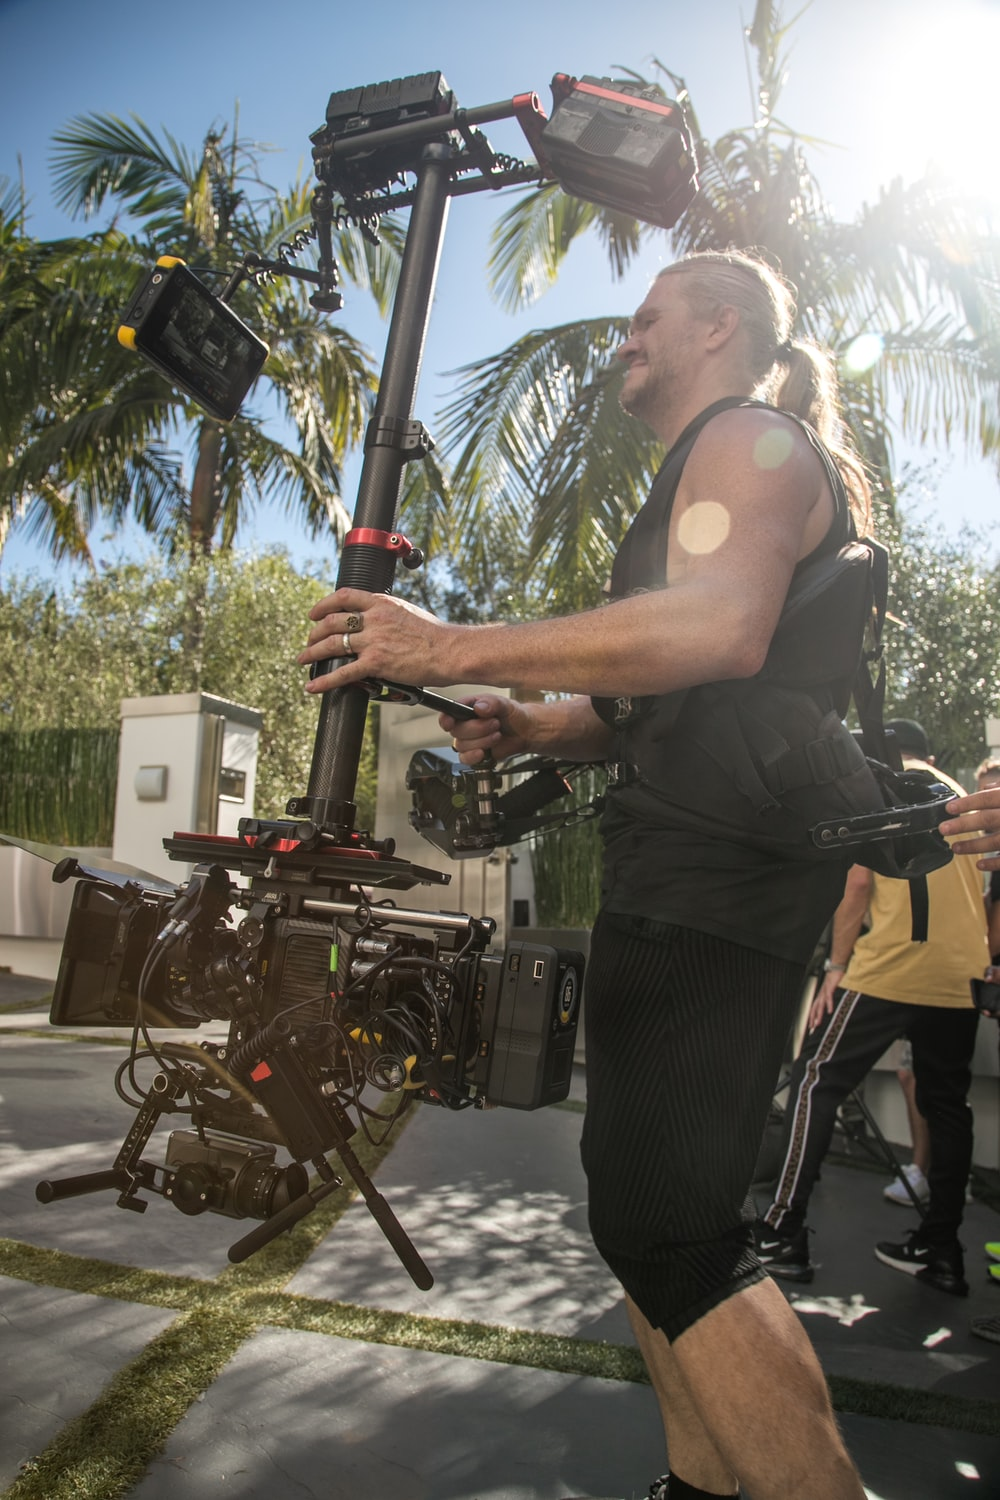 man carrying camera stabilizer